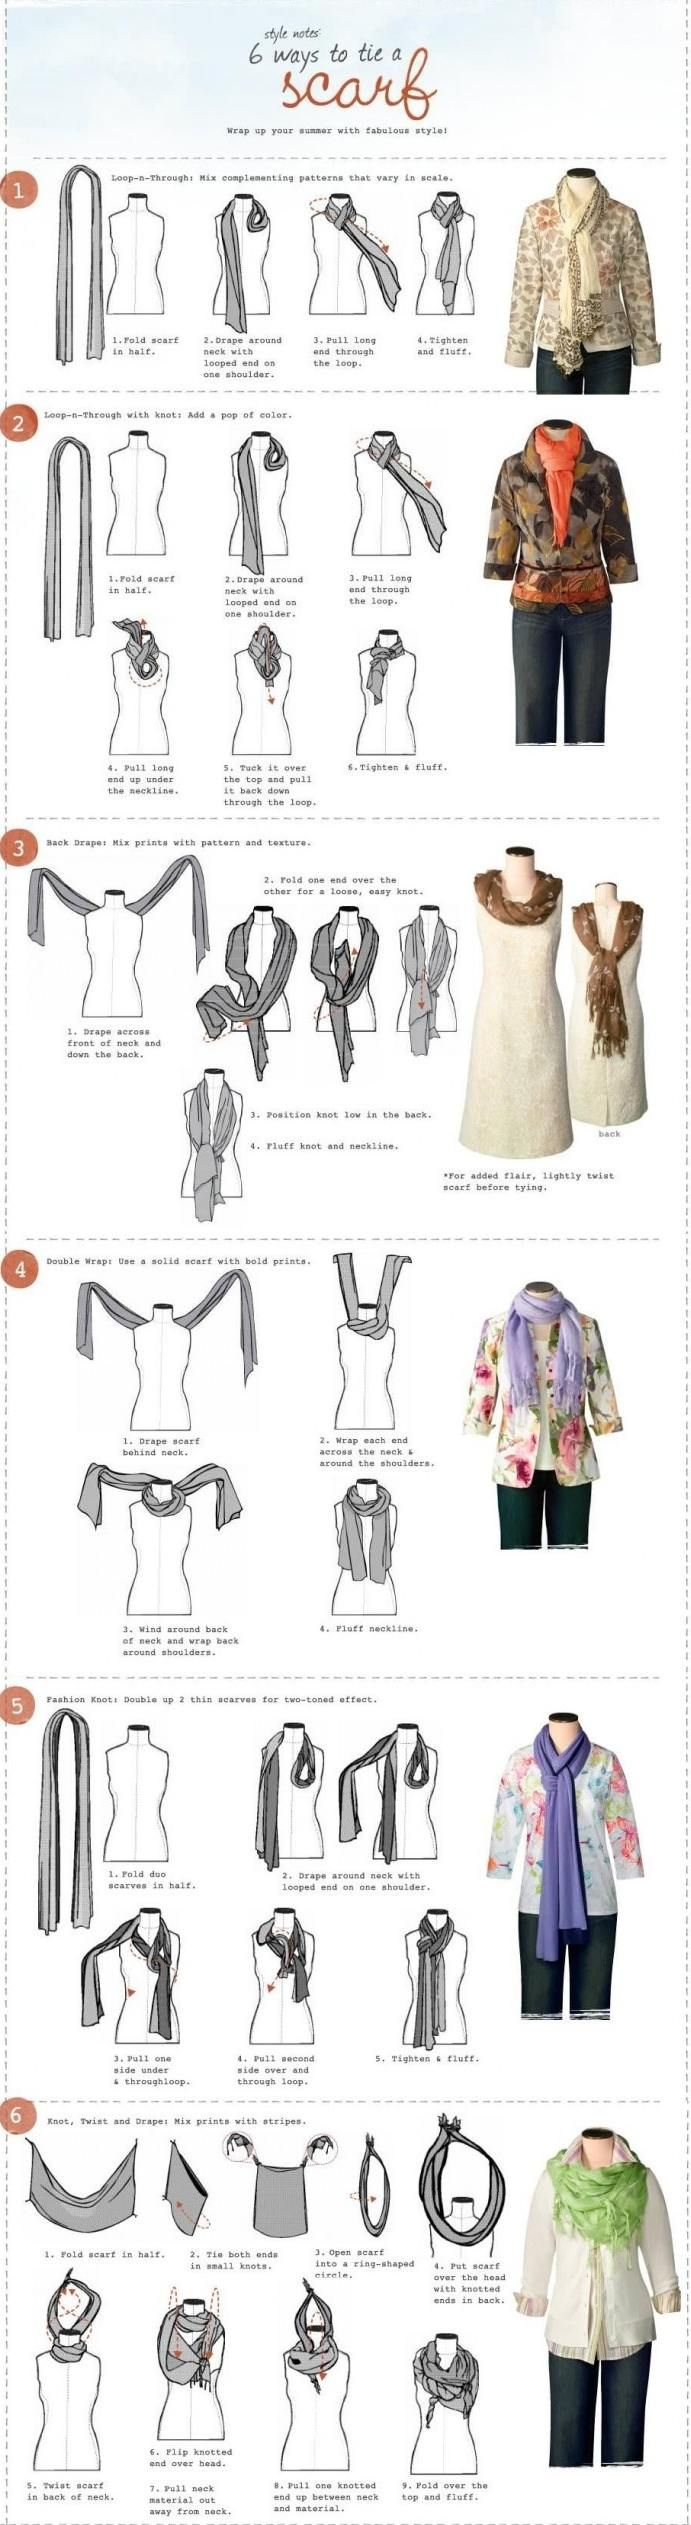 this is SO helpful! No more lousy scarf ties for me! ...this is great